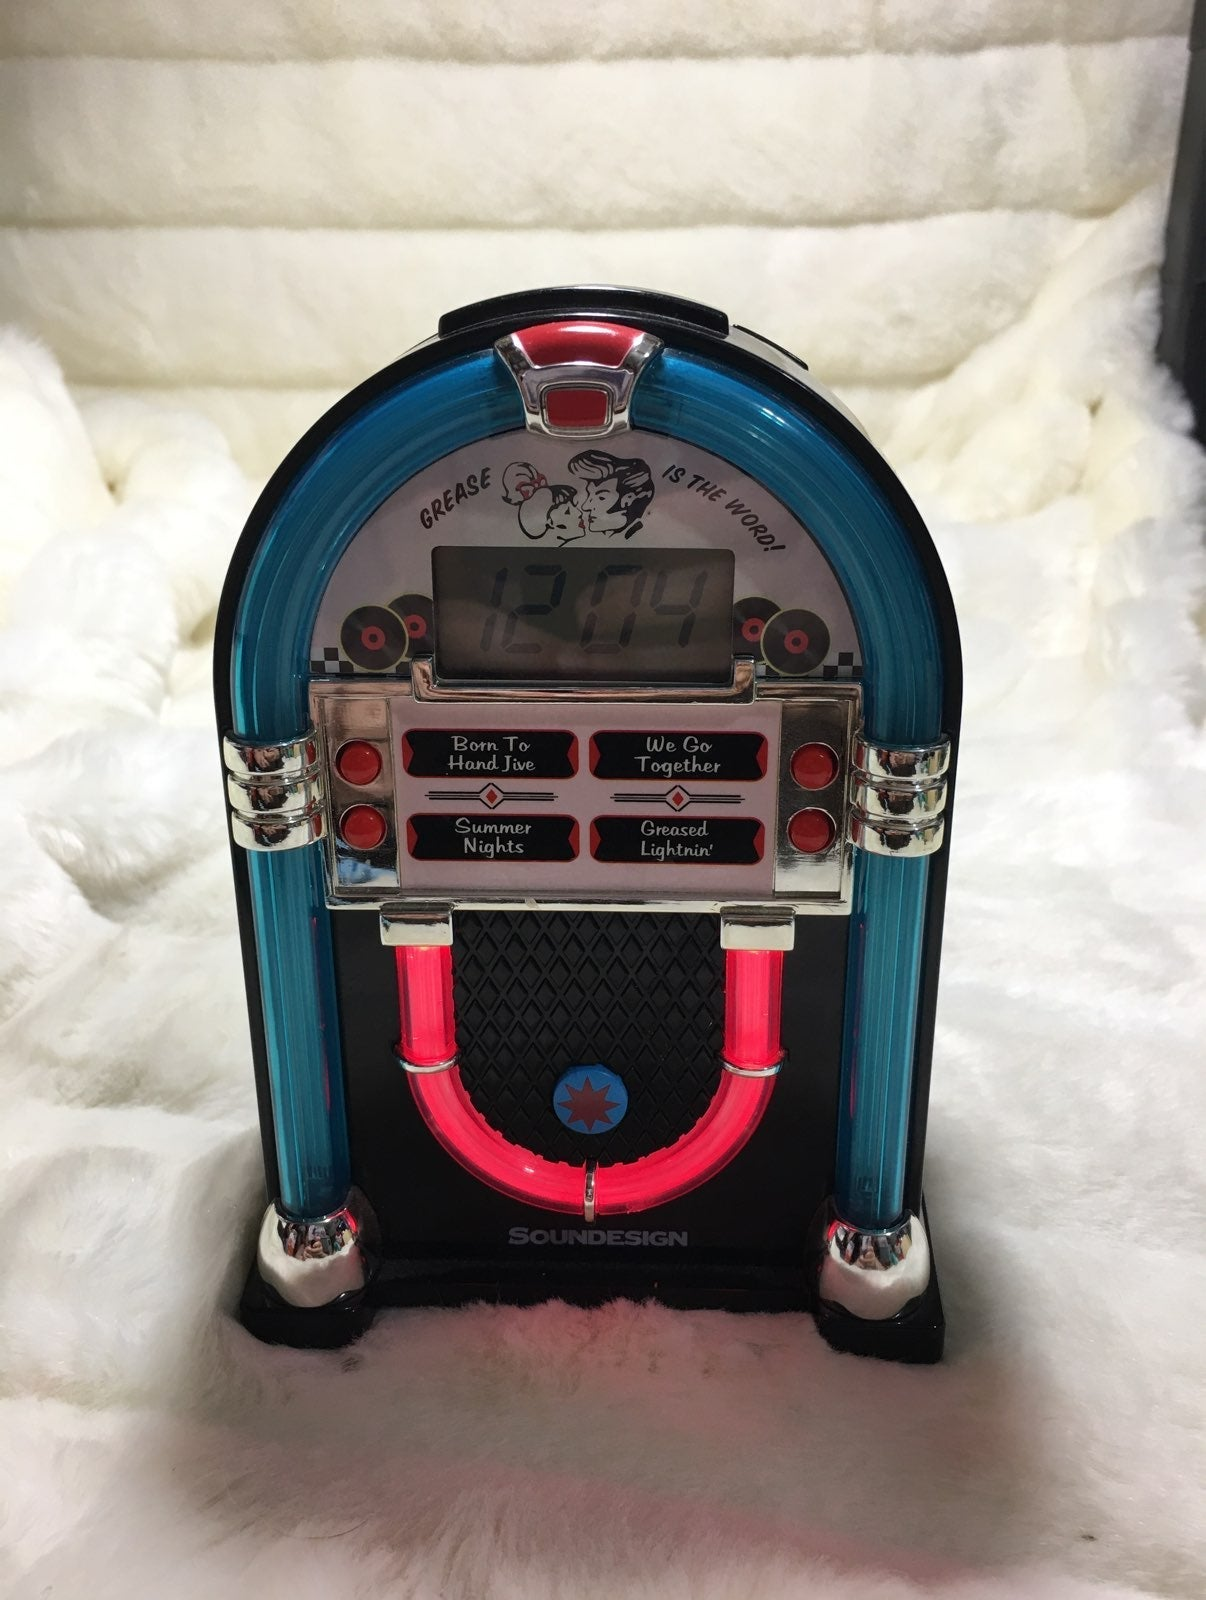 SOUND DESIGN JUKEBOX ALARM CLOCK  Model